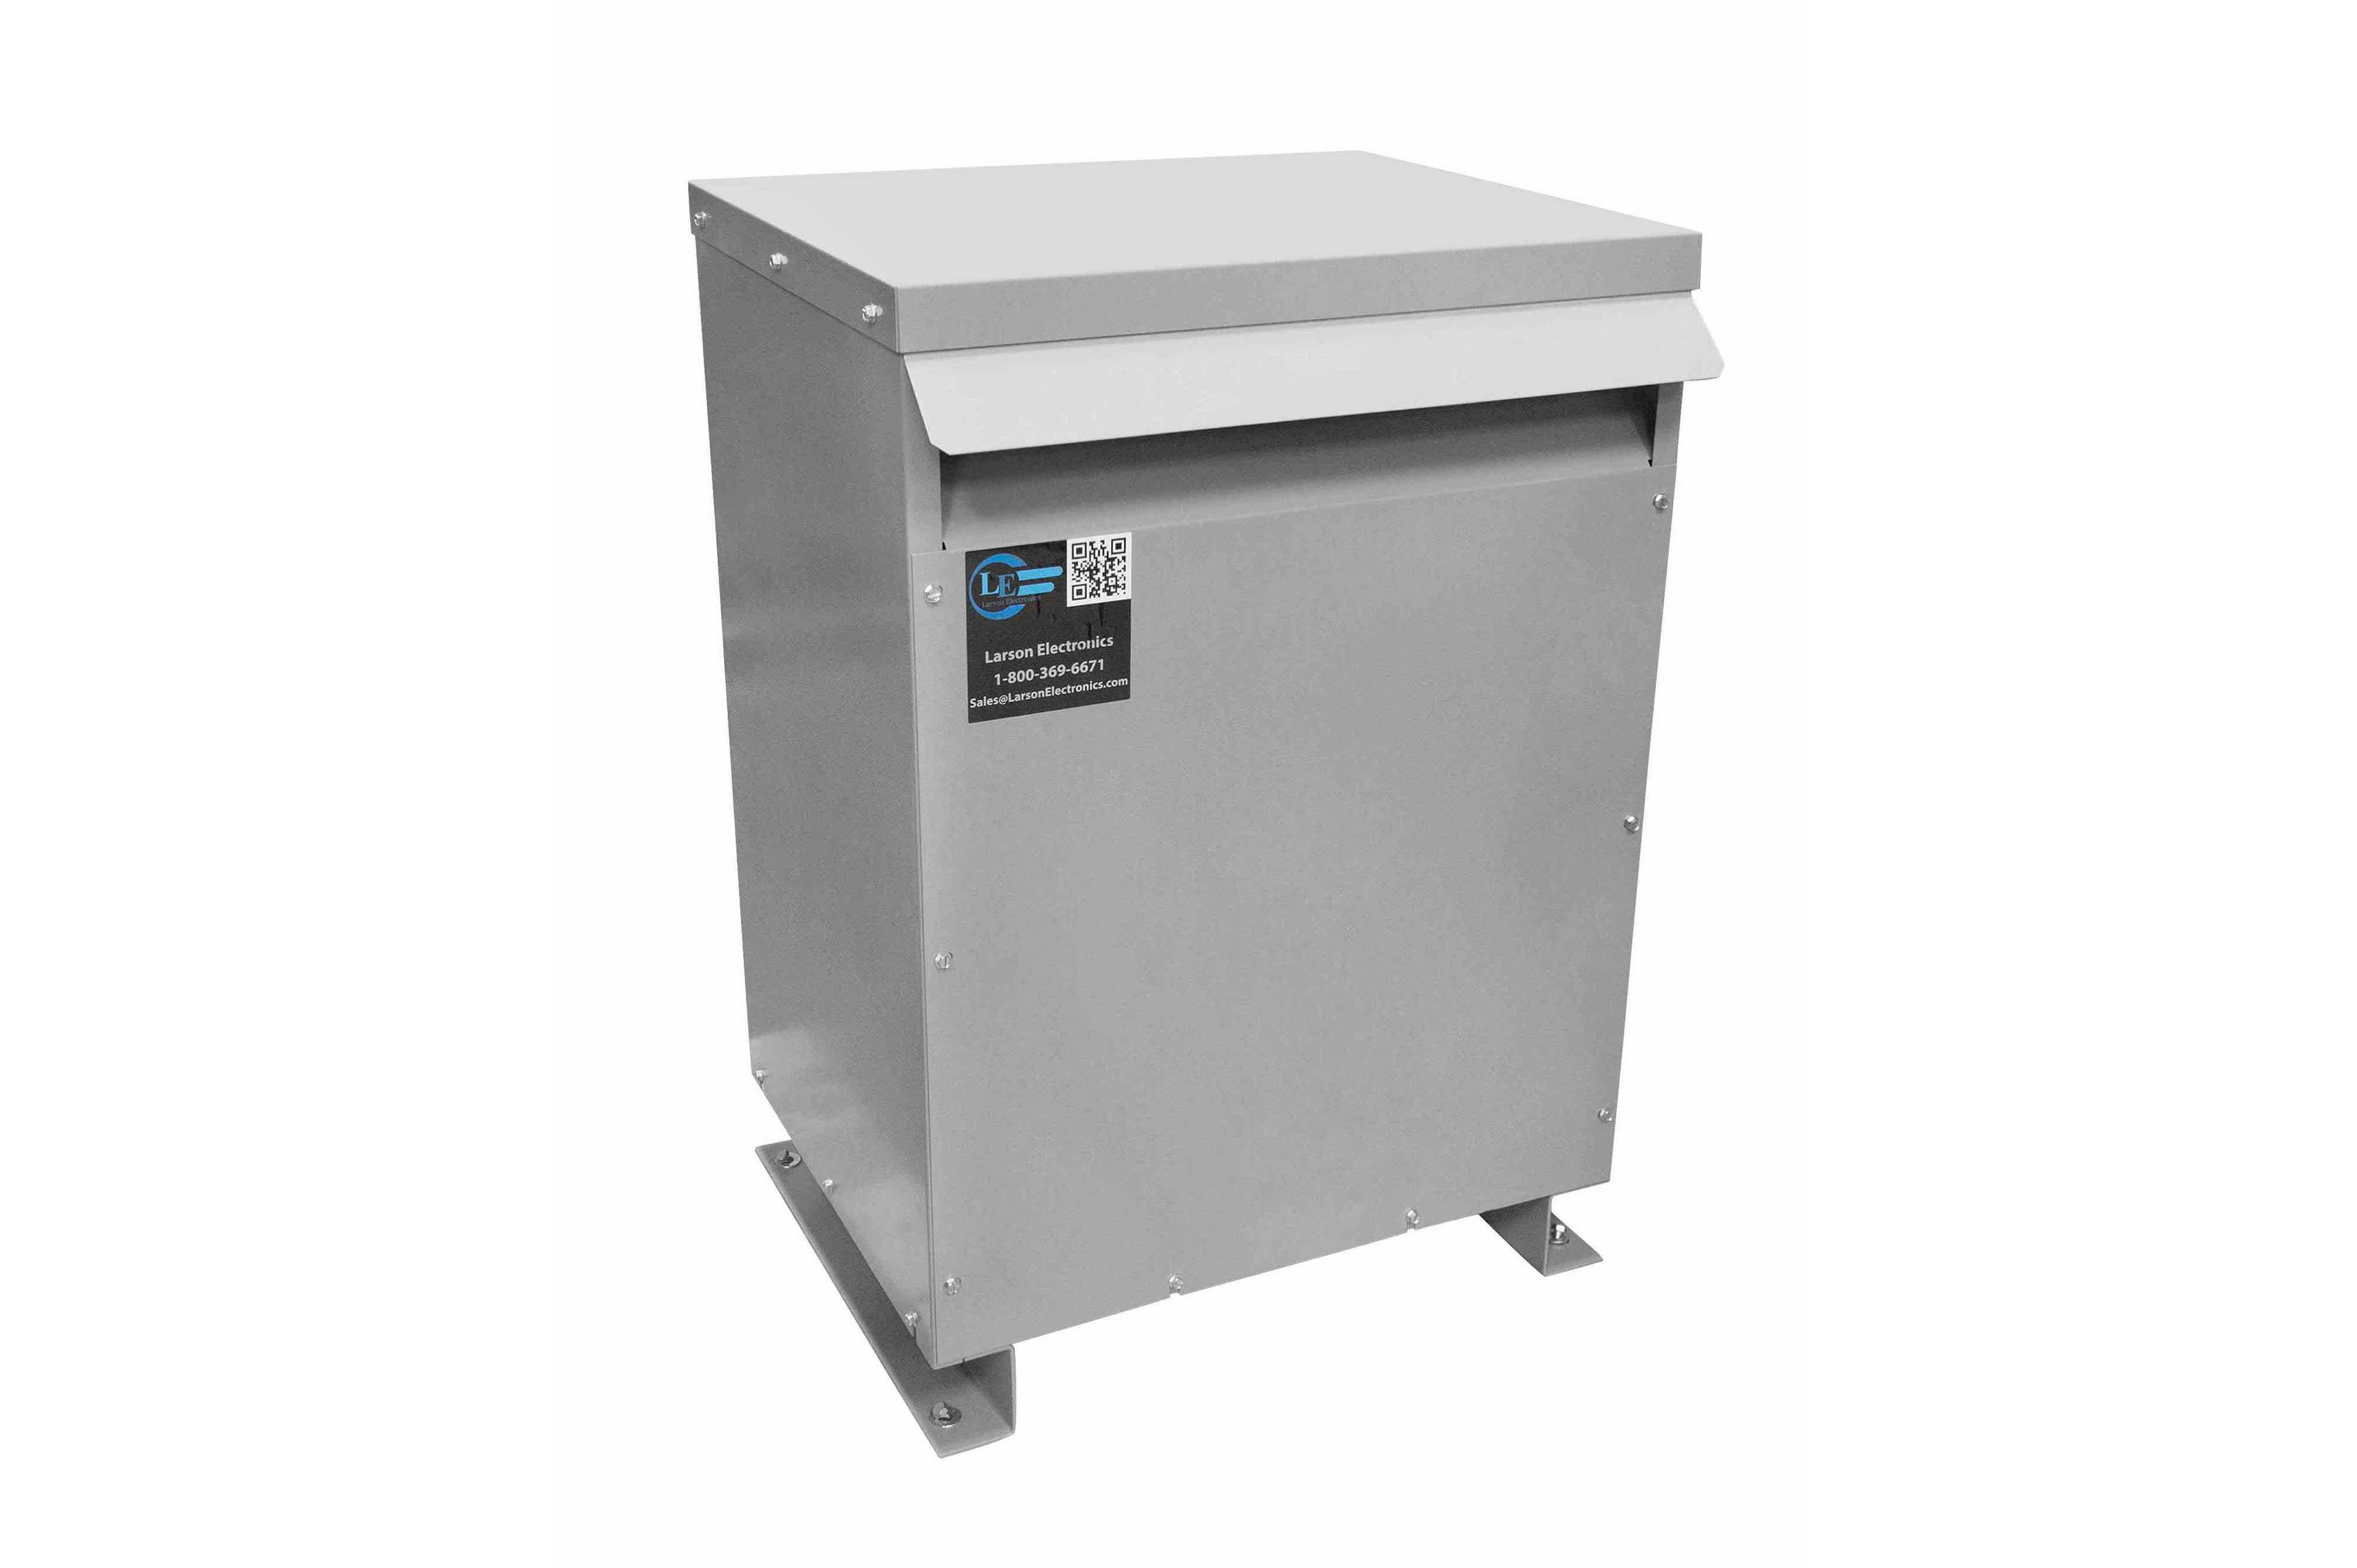 225 kVA 3PH Isolation Transformer, 480V Delta Primary, 240 Delta Secondary, N3R, Ventilated, 60 Hz